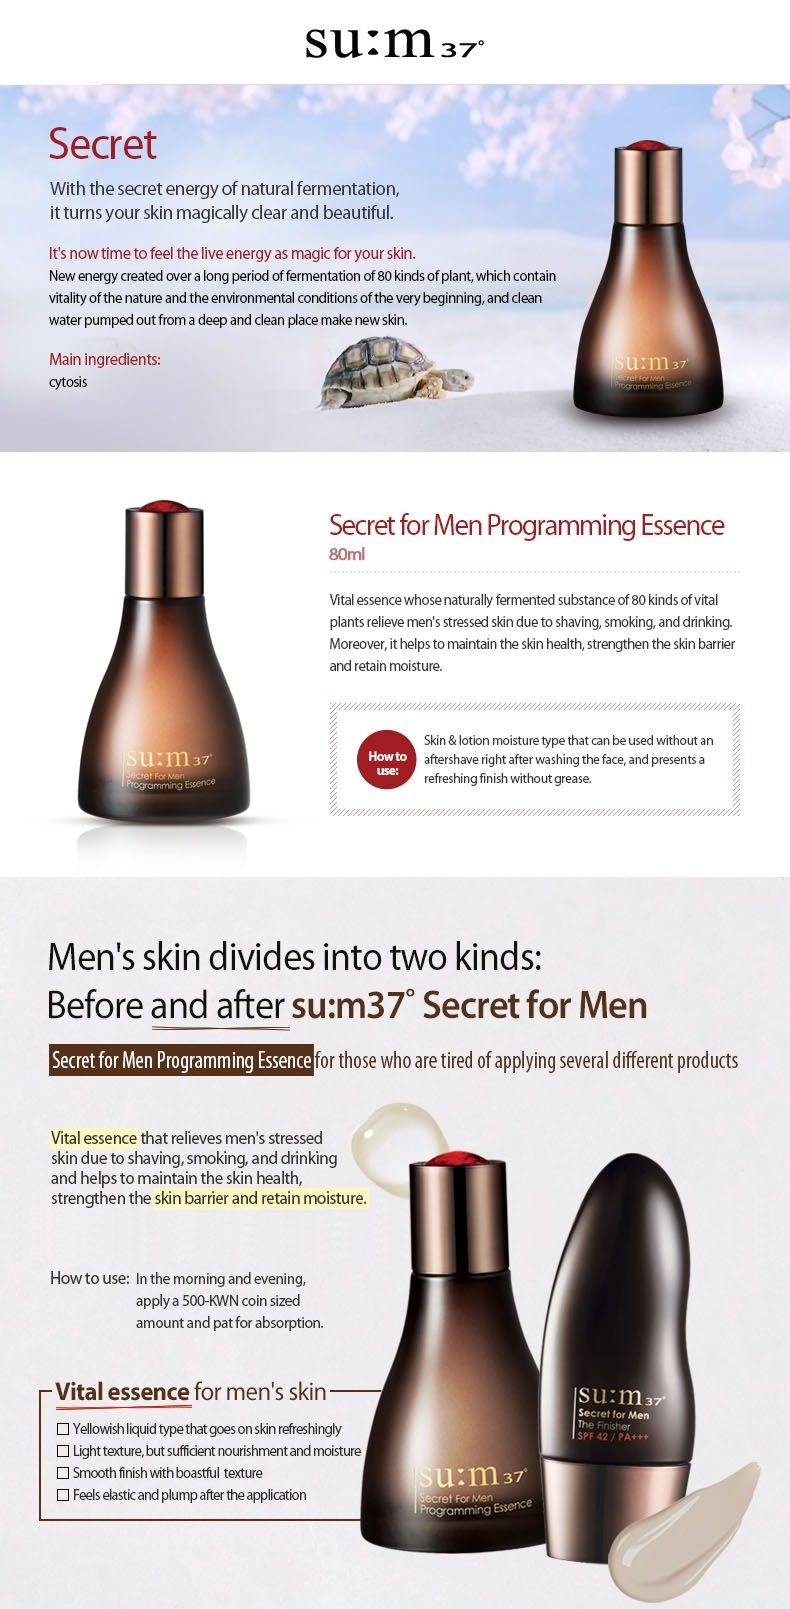 SU:M37° Secret For Men Programming Essence 80ml